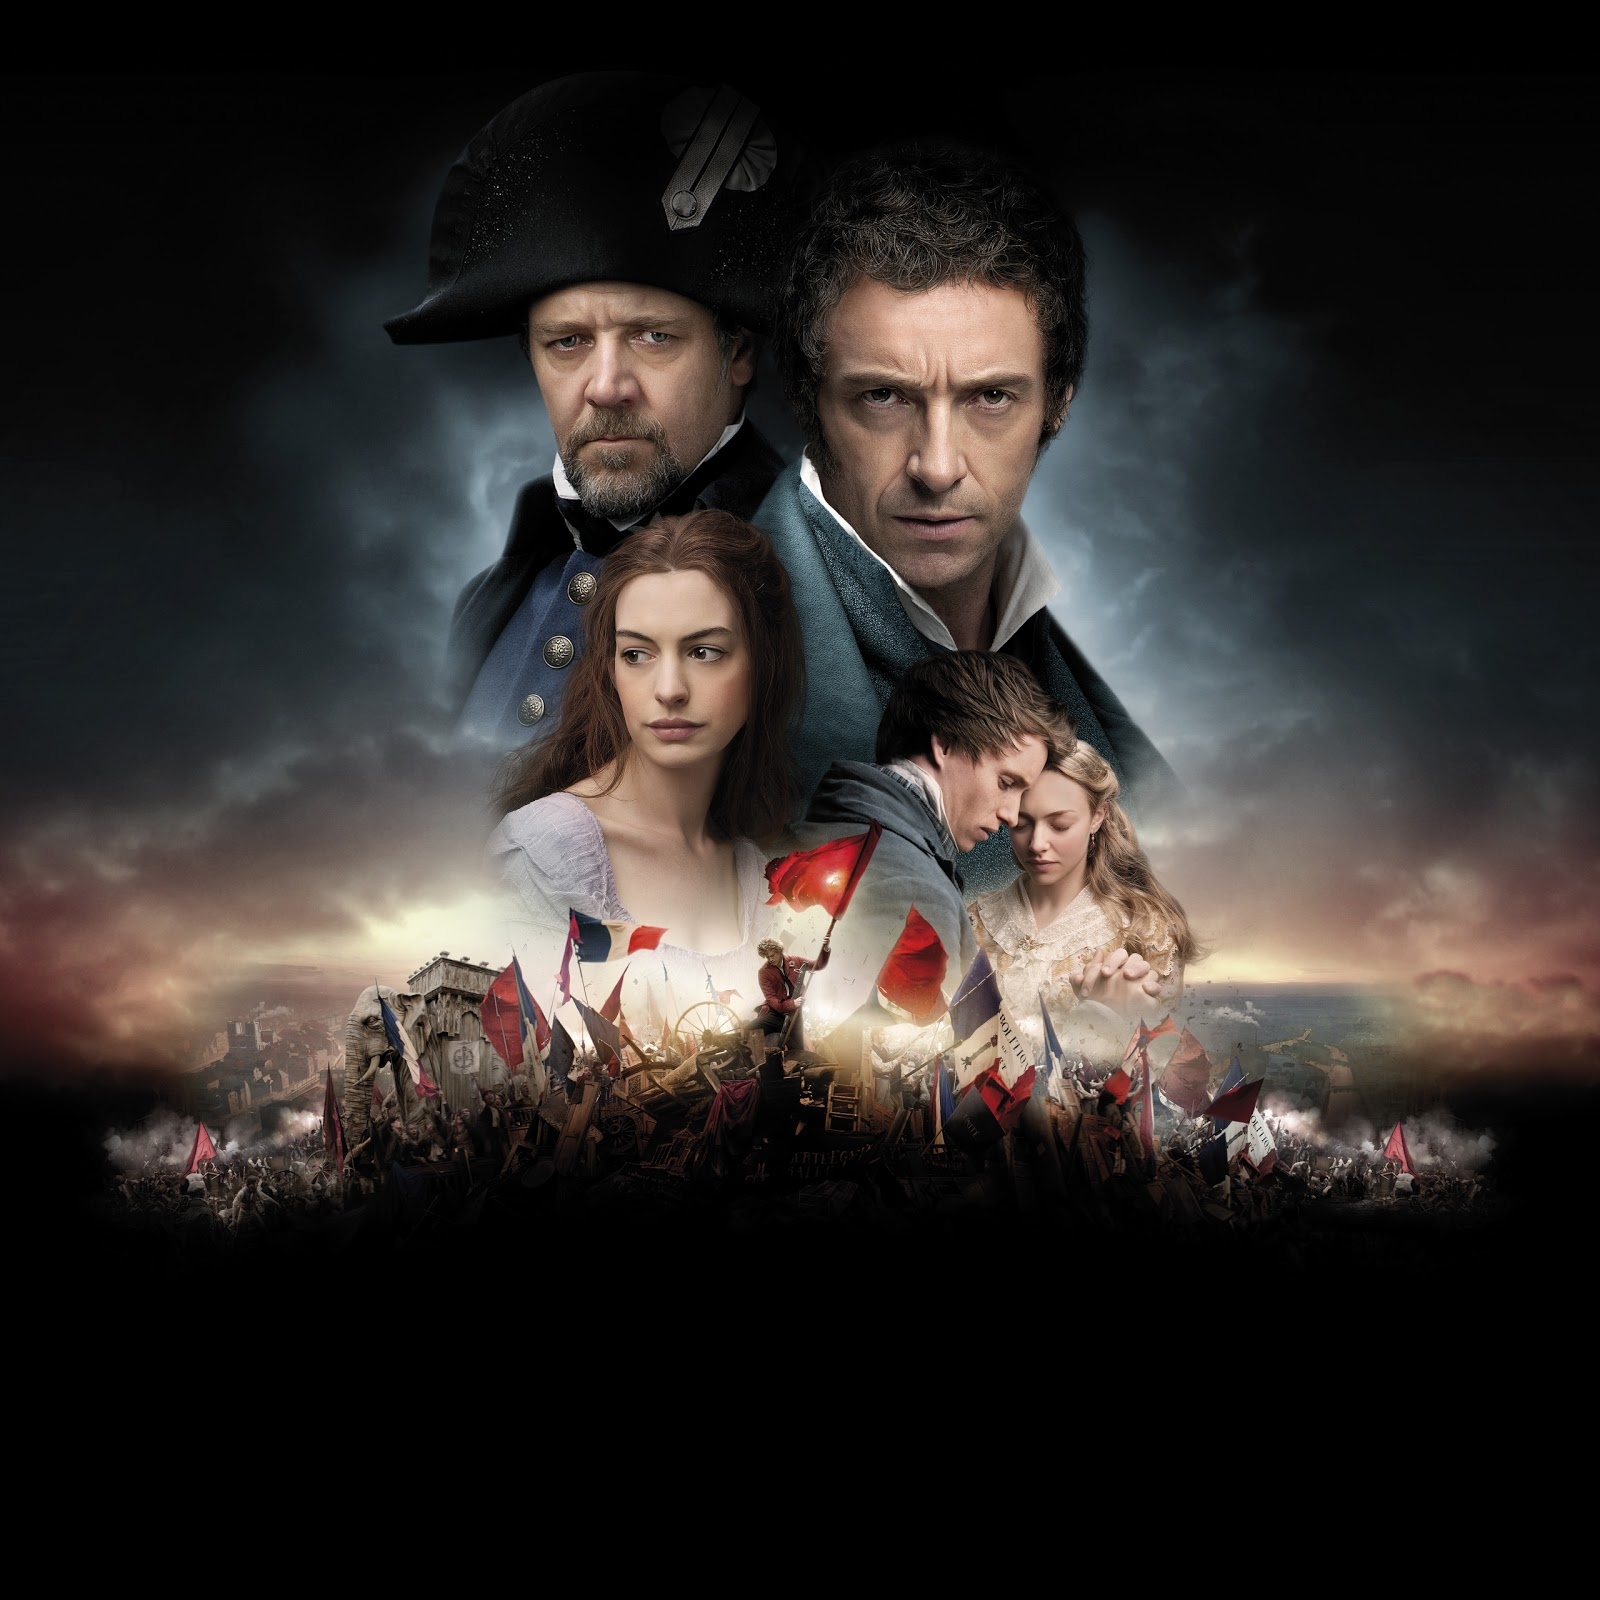 Les Miserables Poster Wallpaper Textless 1600x1600